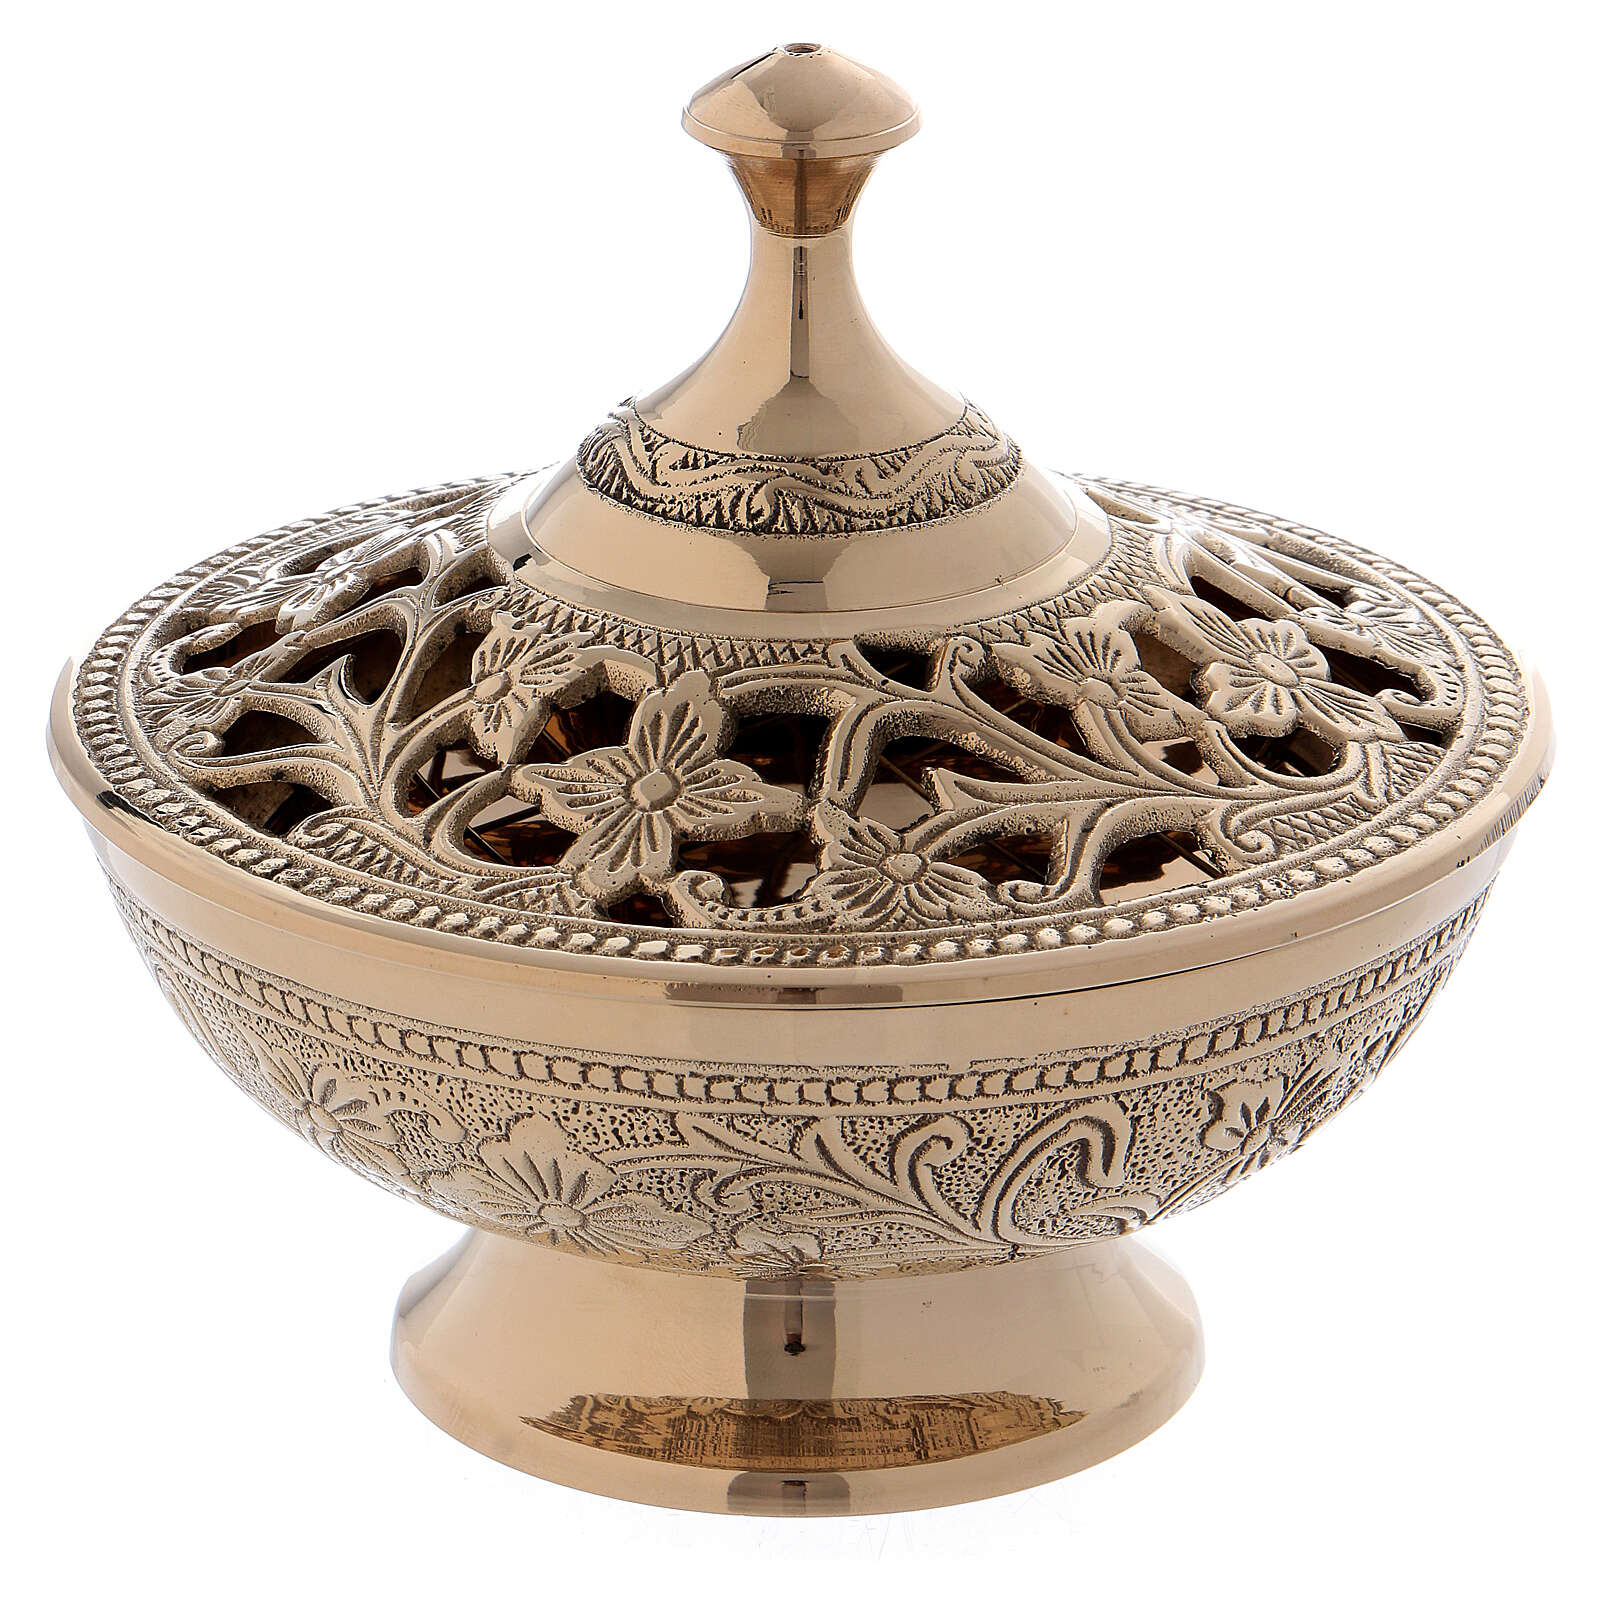 Burning incense with decorations and floral carvings in golden brass 3